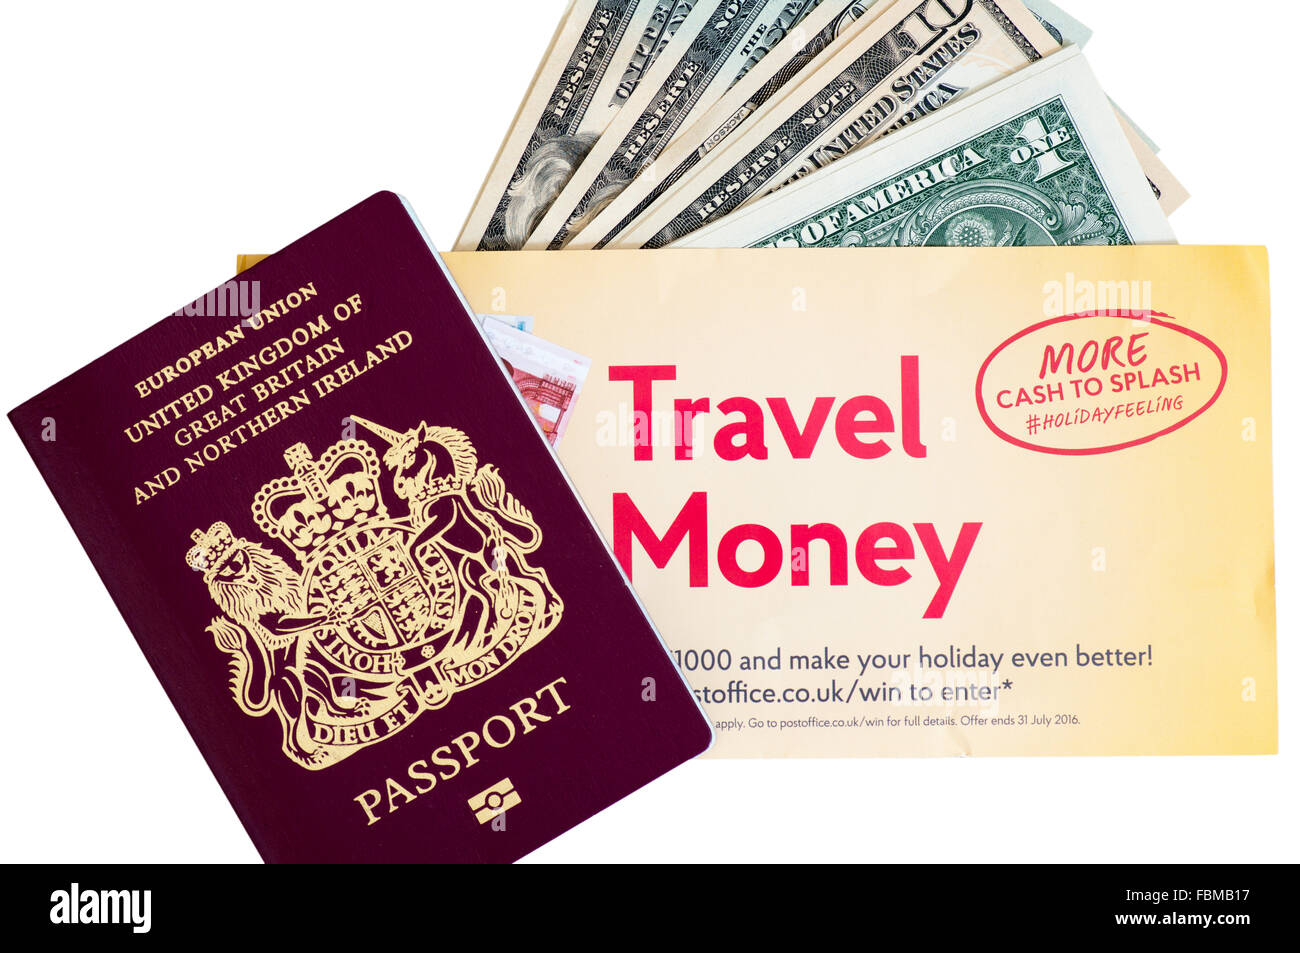 Uk passport office stock photos uk passport office stock images post office travel money american dollars usd notes currency with uk chipped passport cut out falaconquin